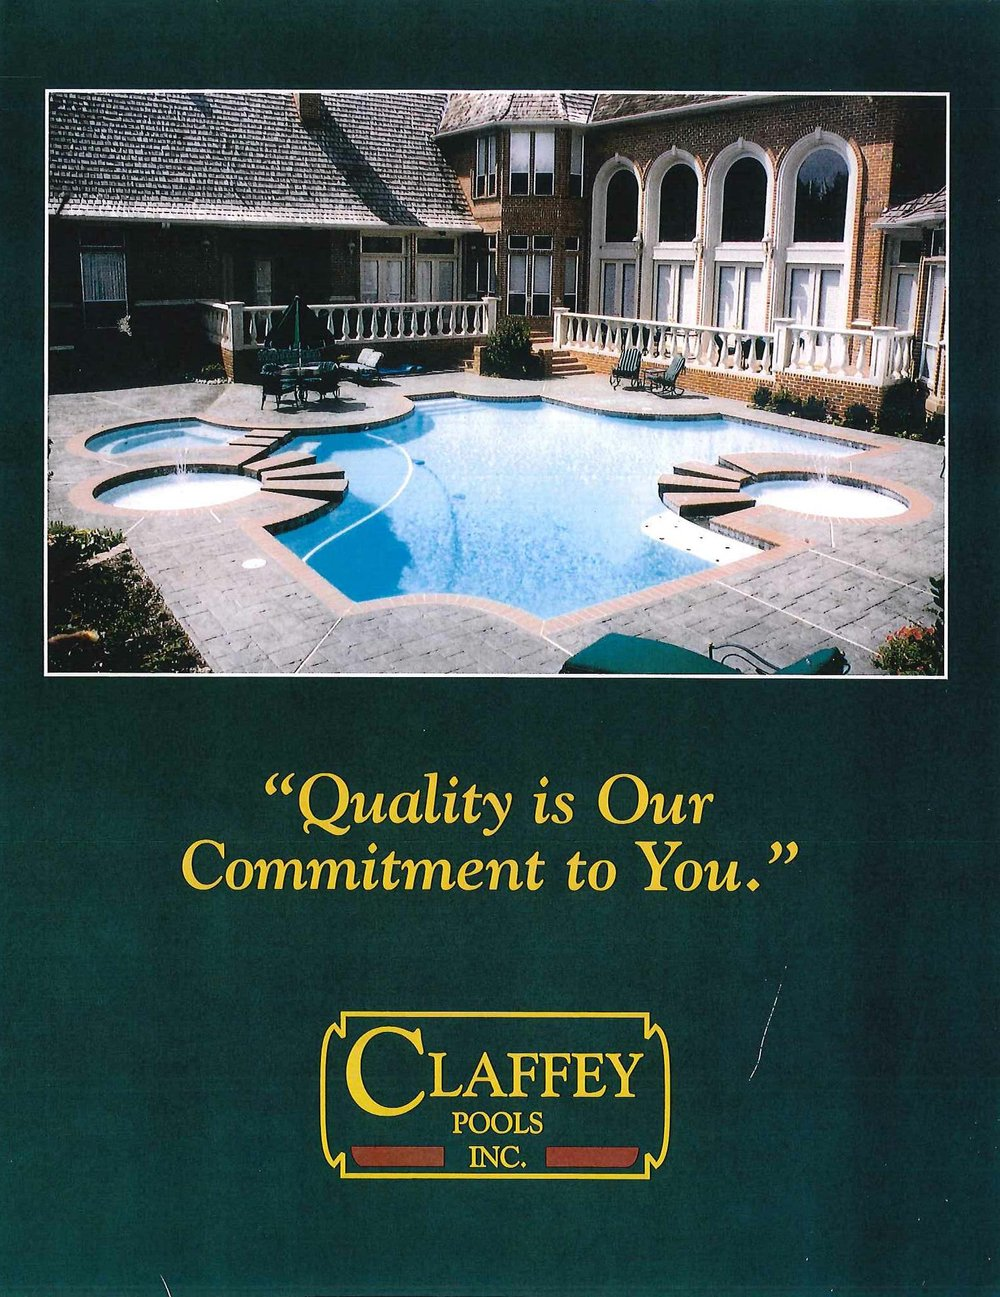 1989 - Paul hired his first non-family employee, Jim Reynolds.Pools by Paul Claffey constructed their 100th pool.